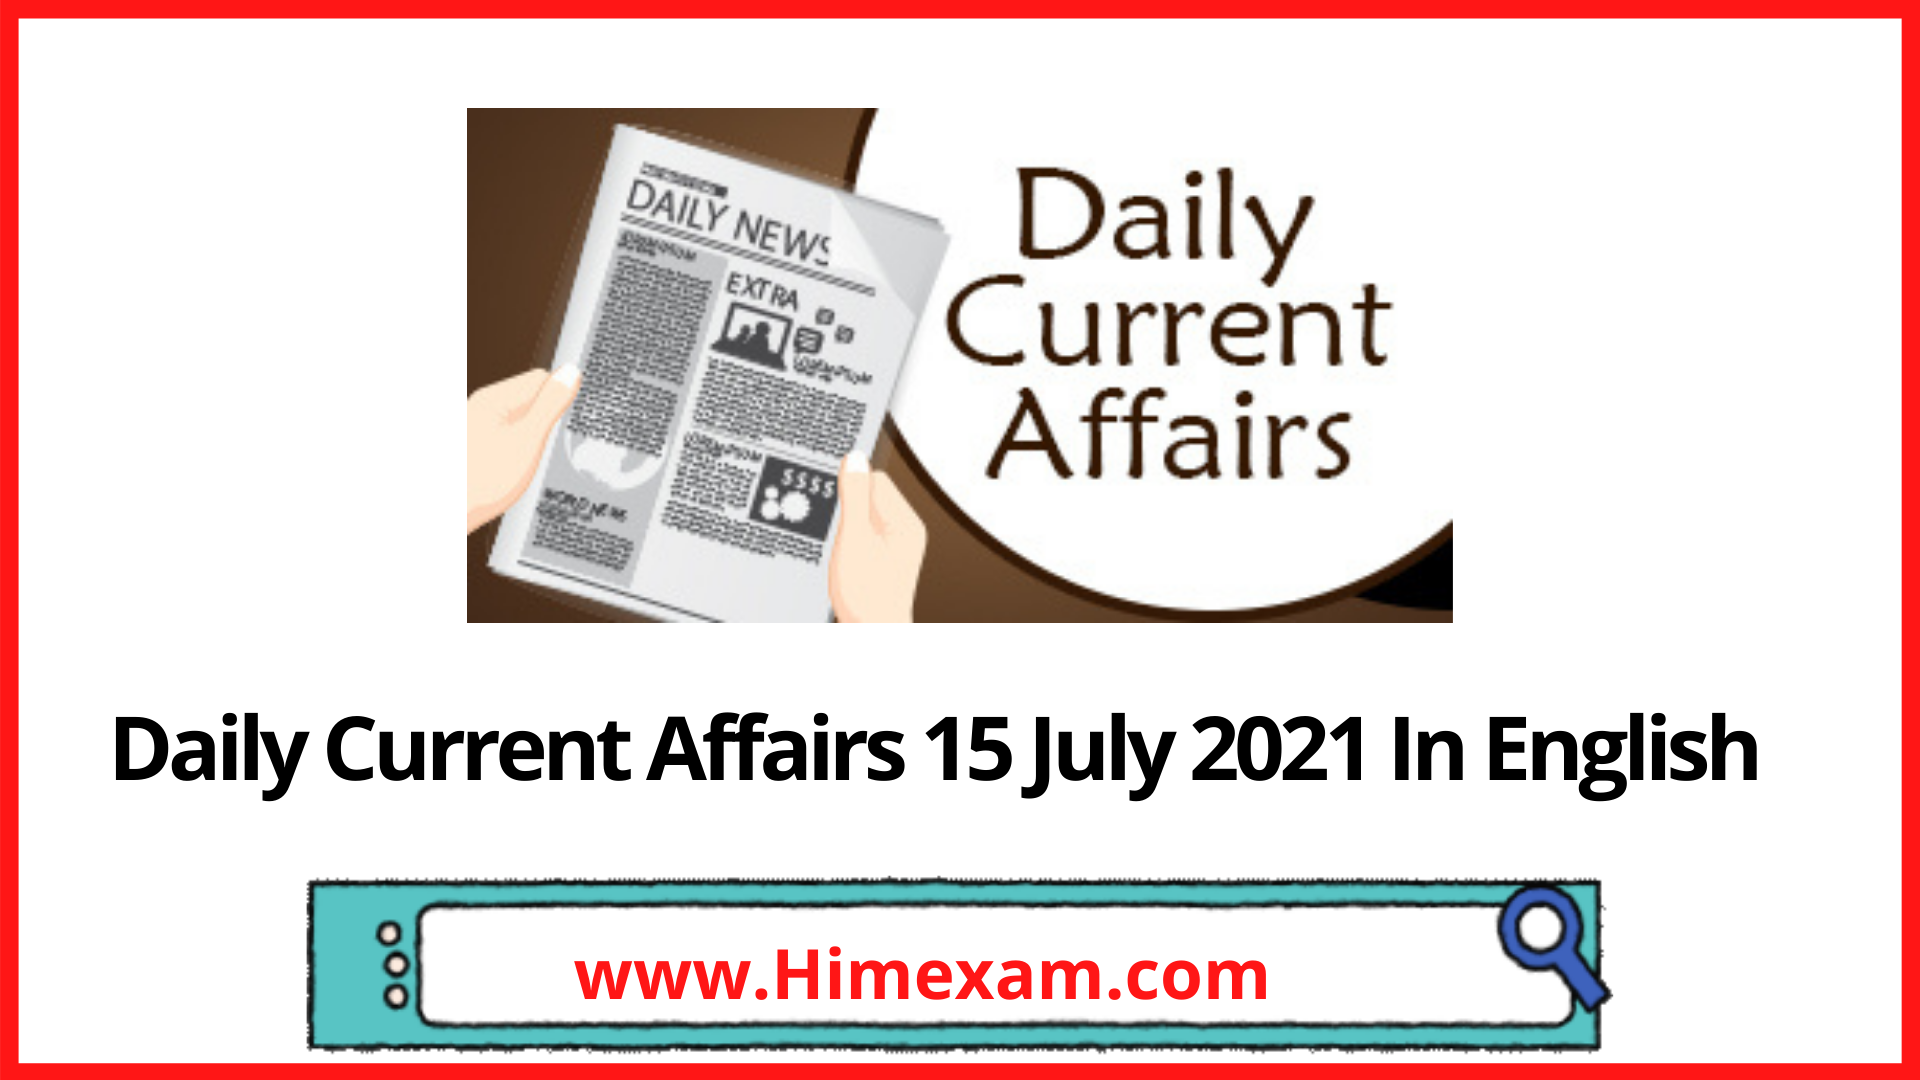 Daily Current Affairs 15 July 2021 In English